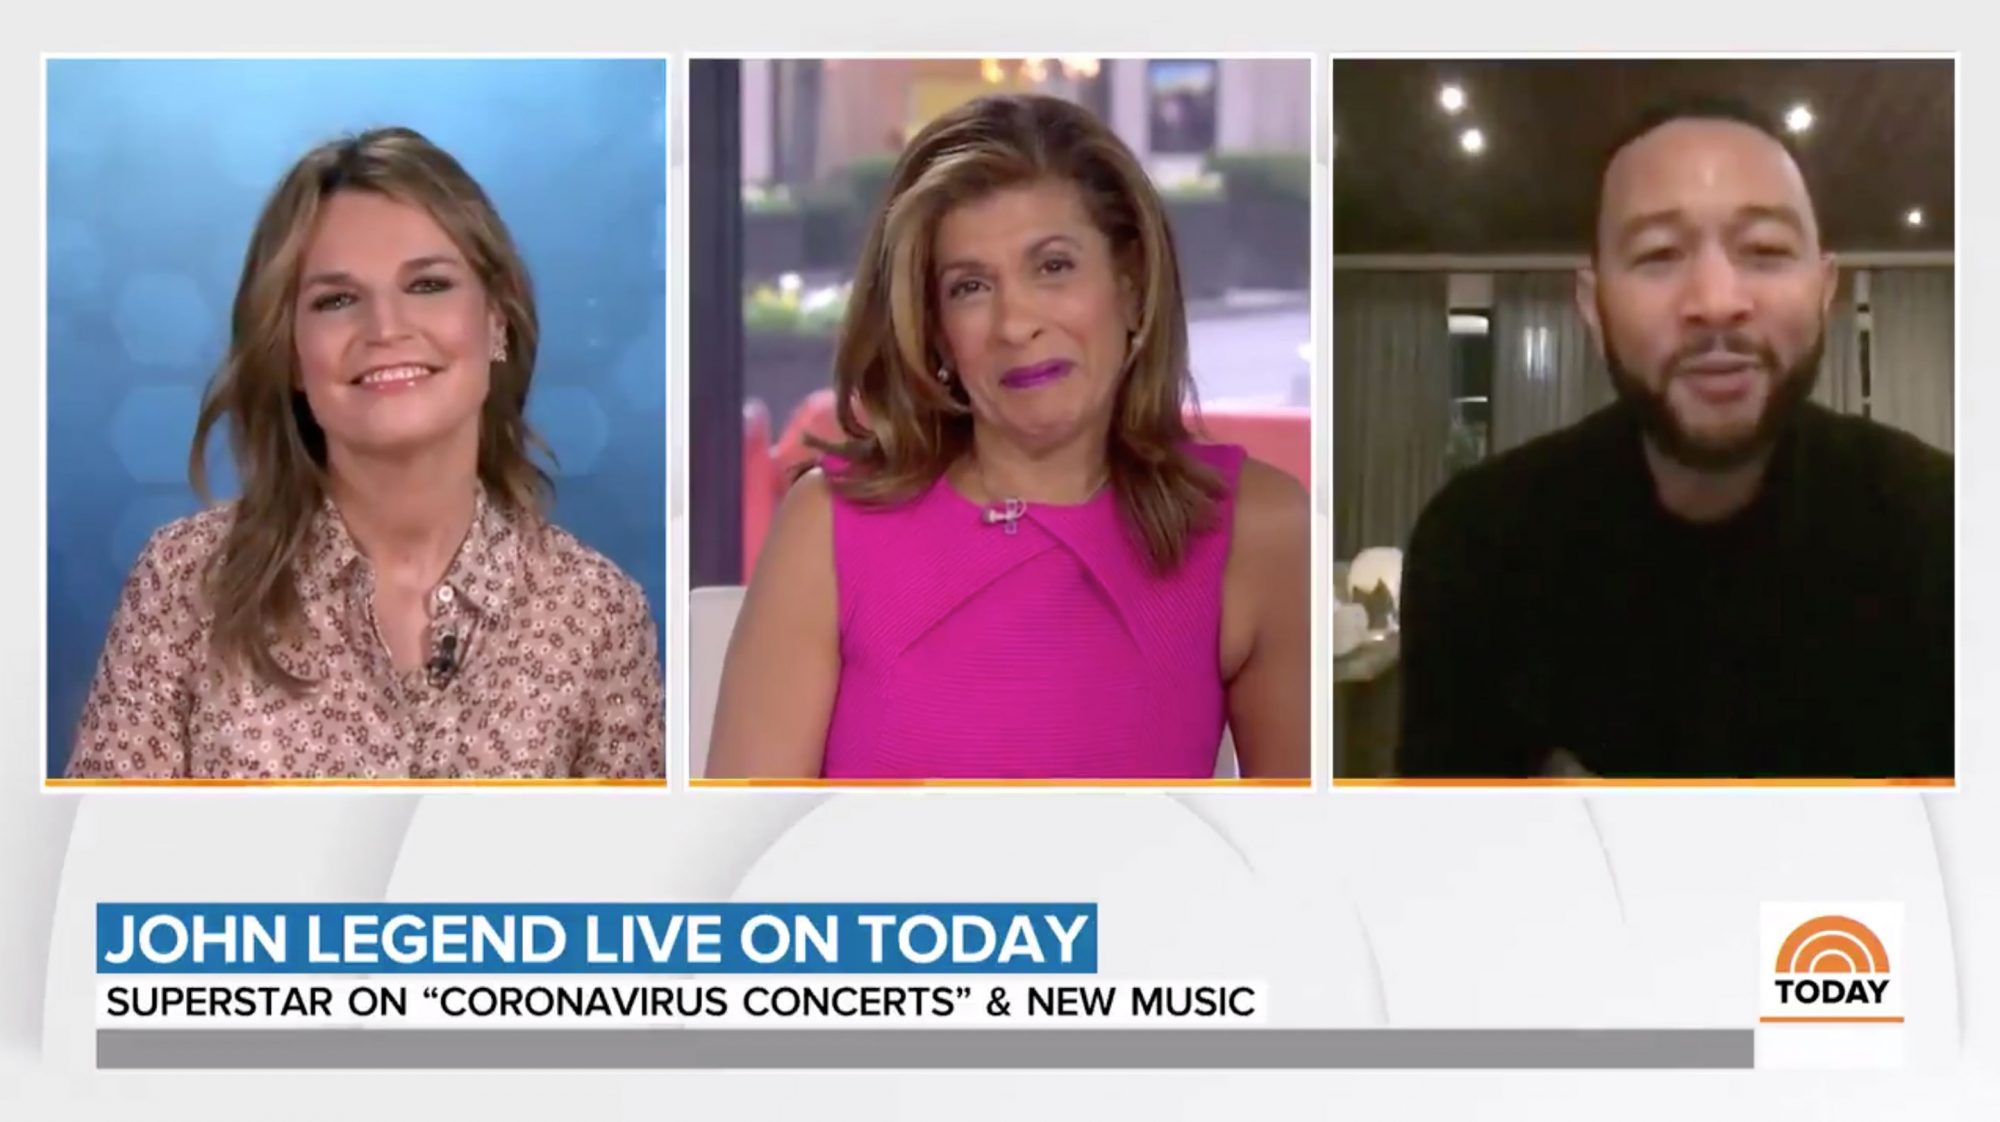 John Legend on the Today Show